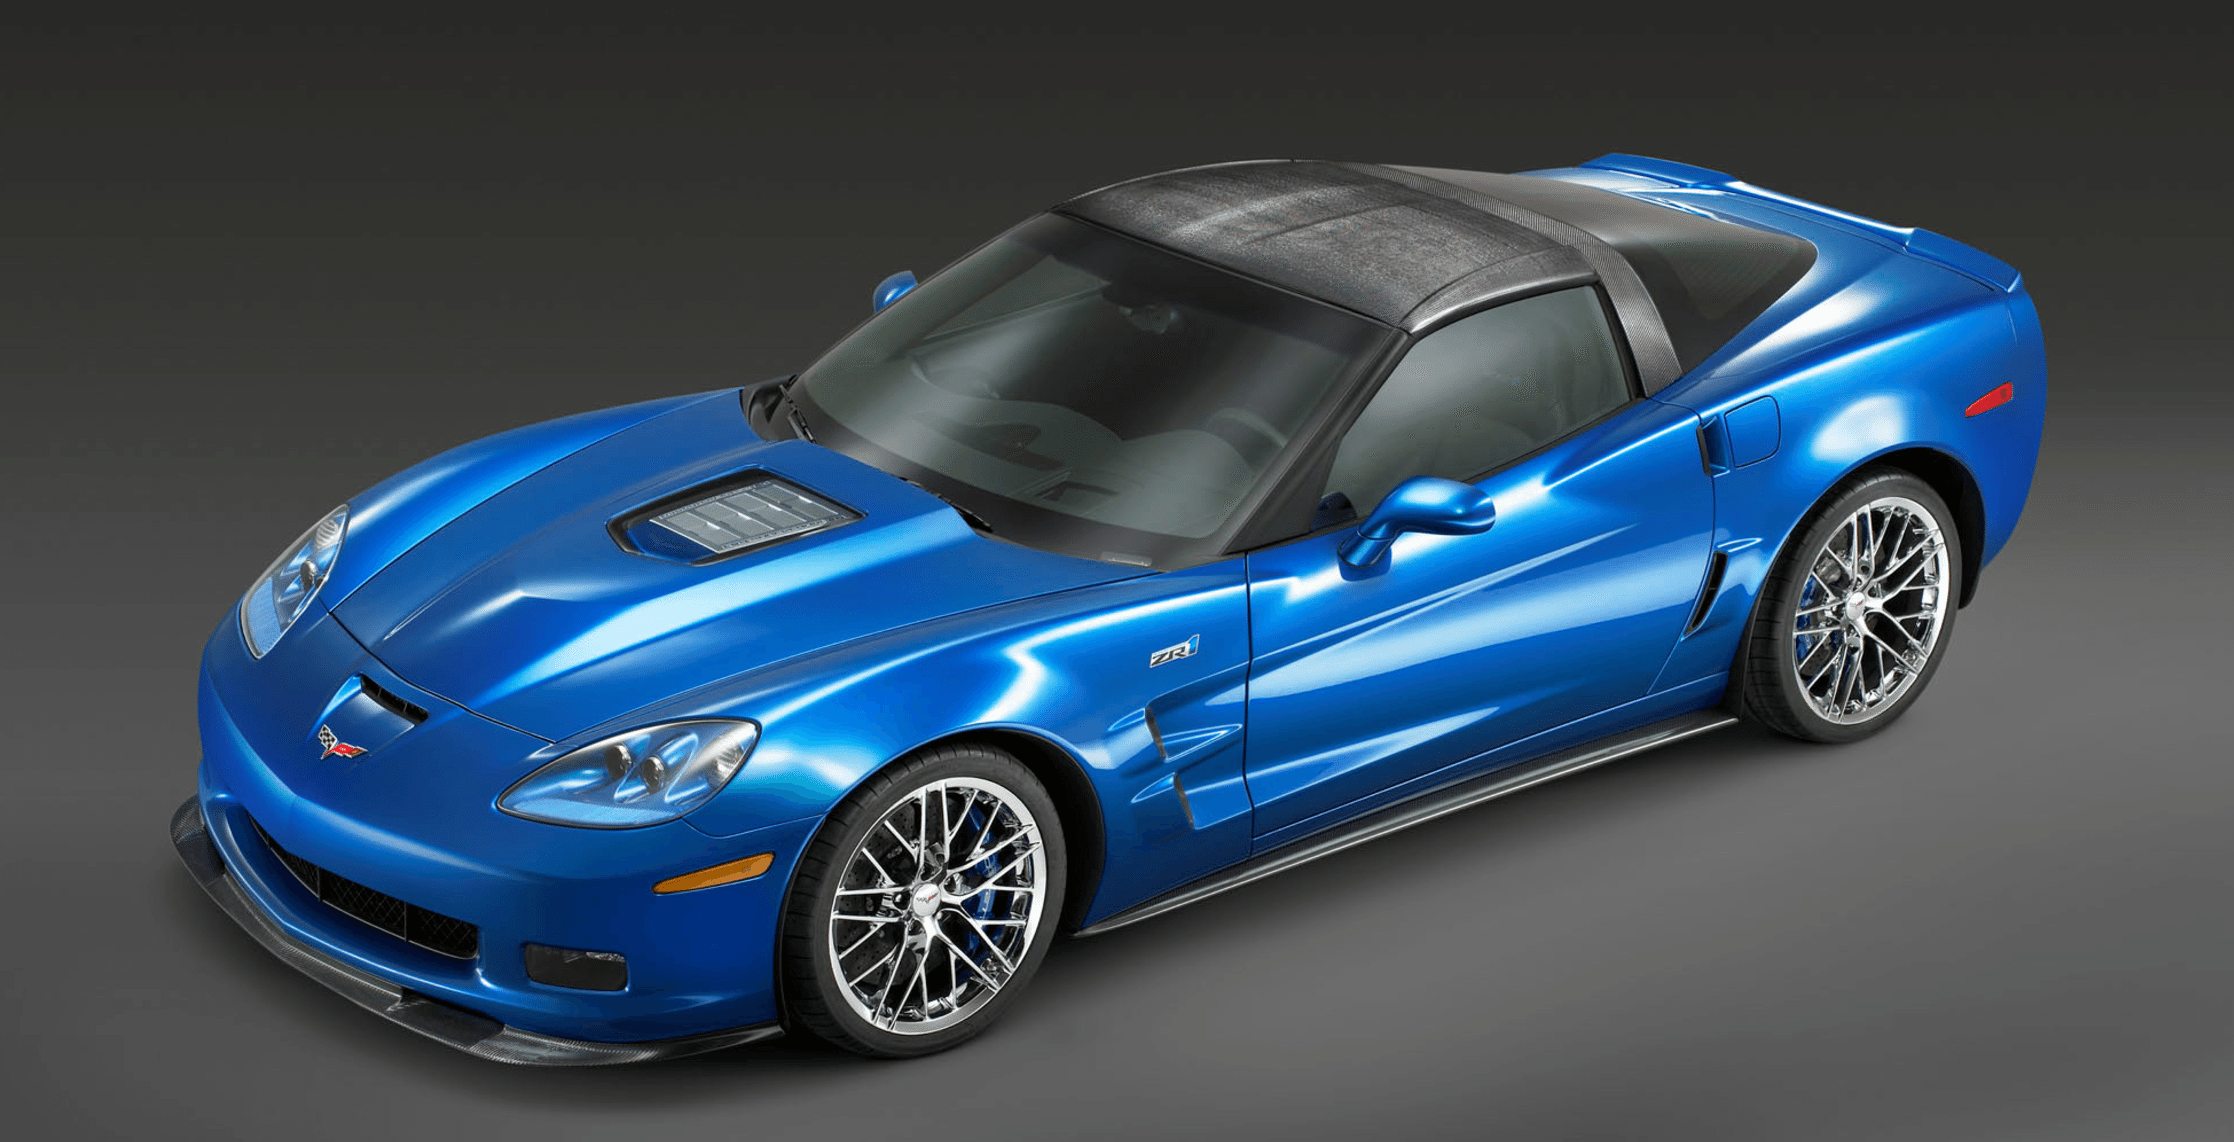 2007 Corvette Blue Devil